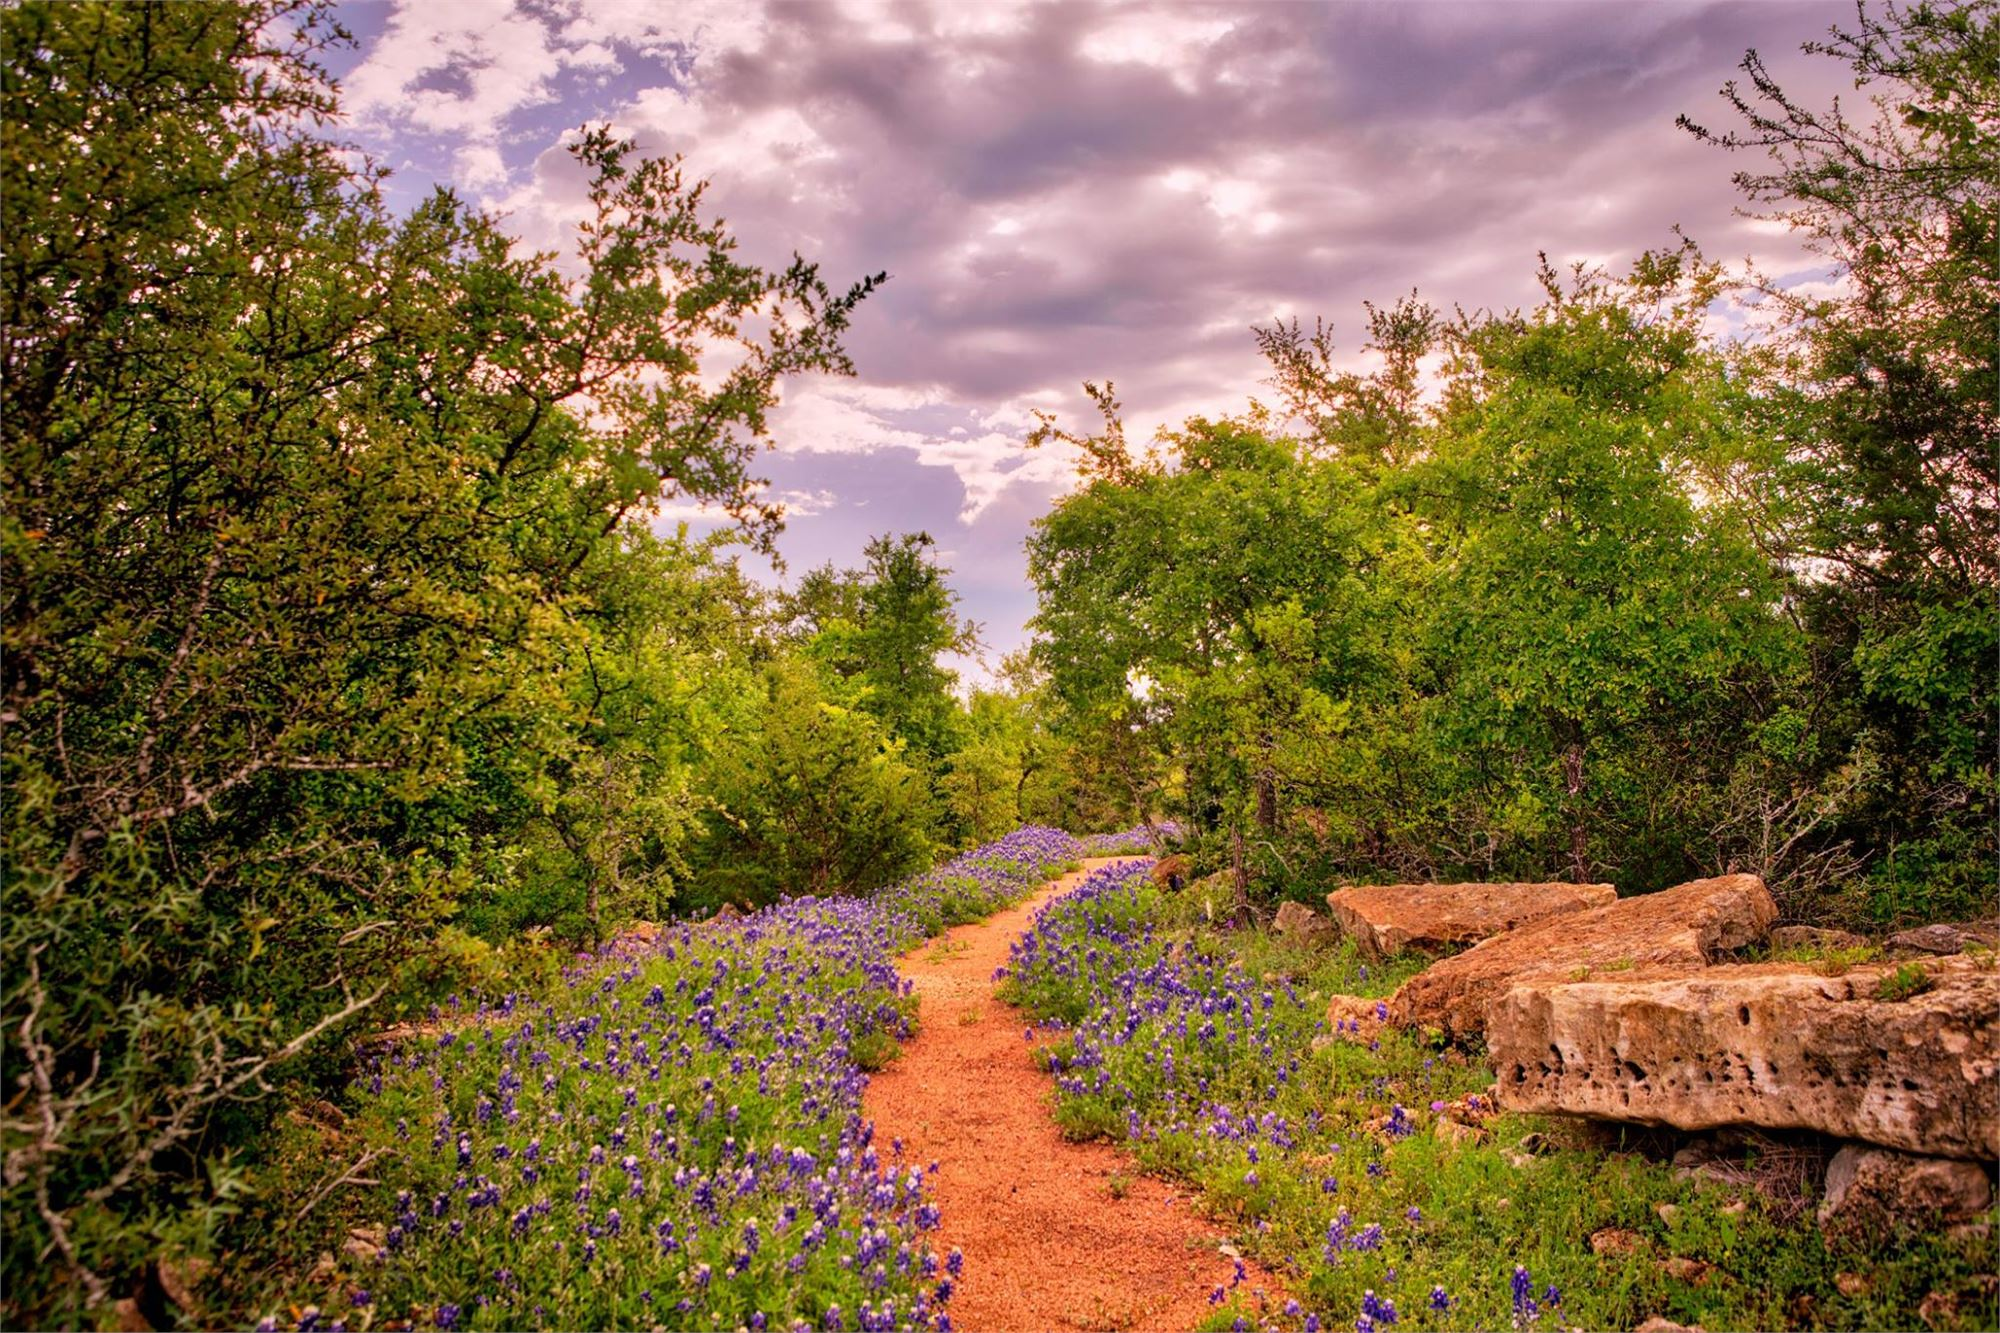 a dirt path weaving through a crop of bluebonnets with trees